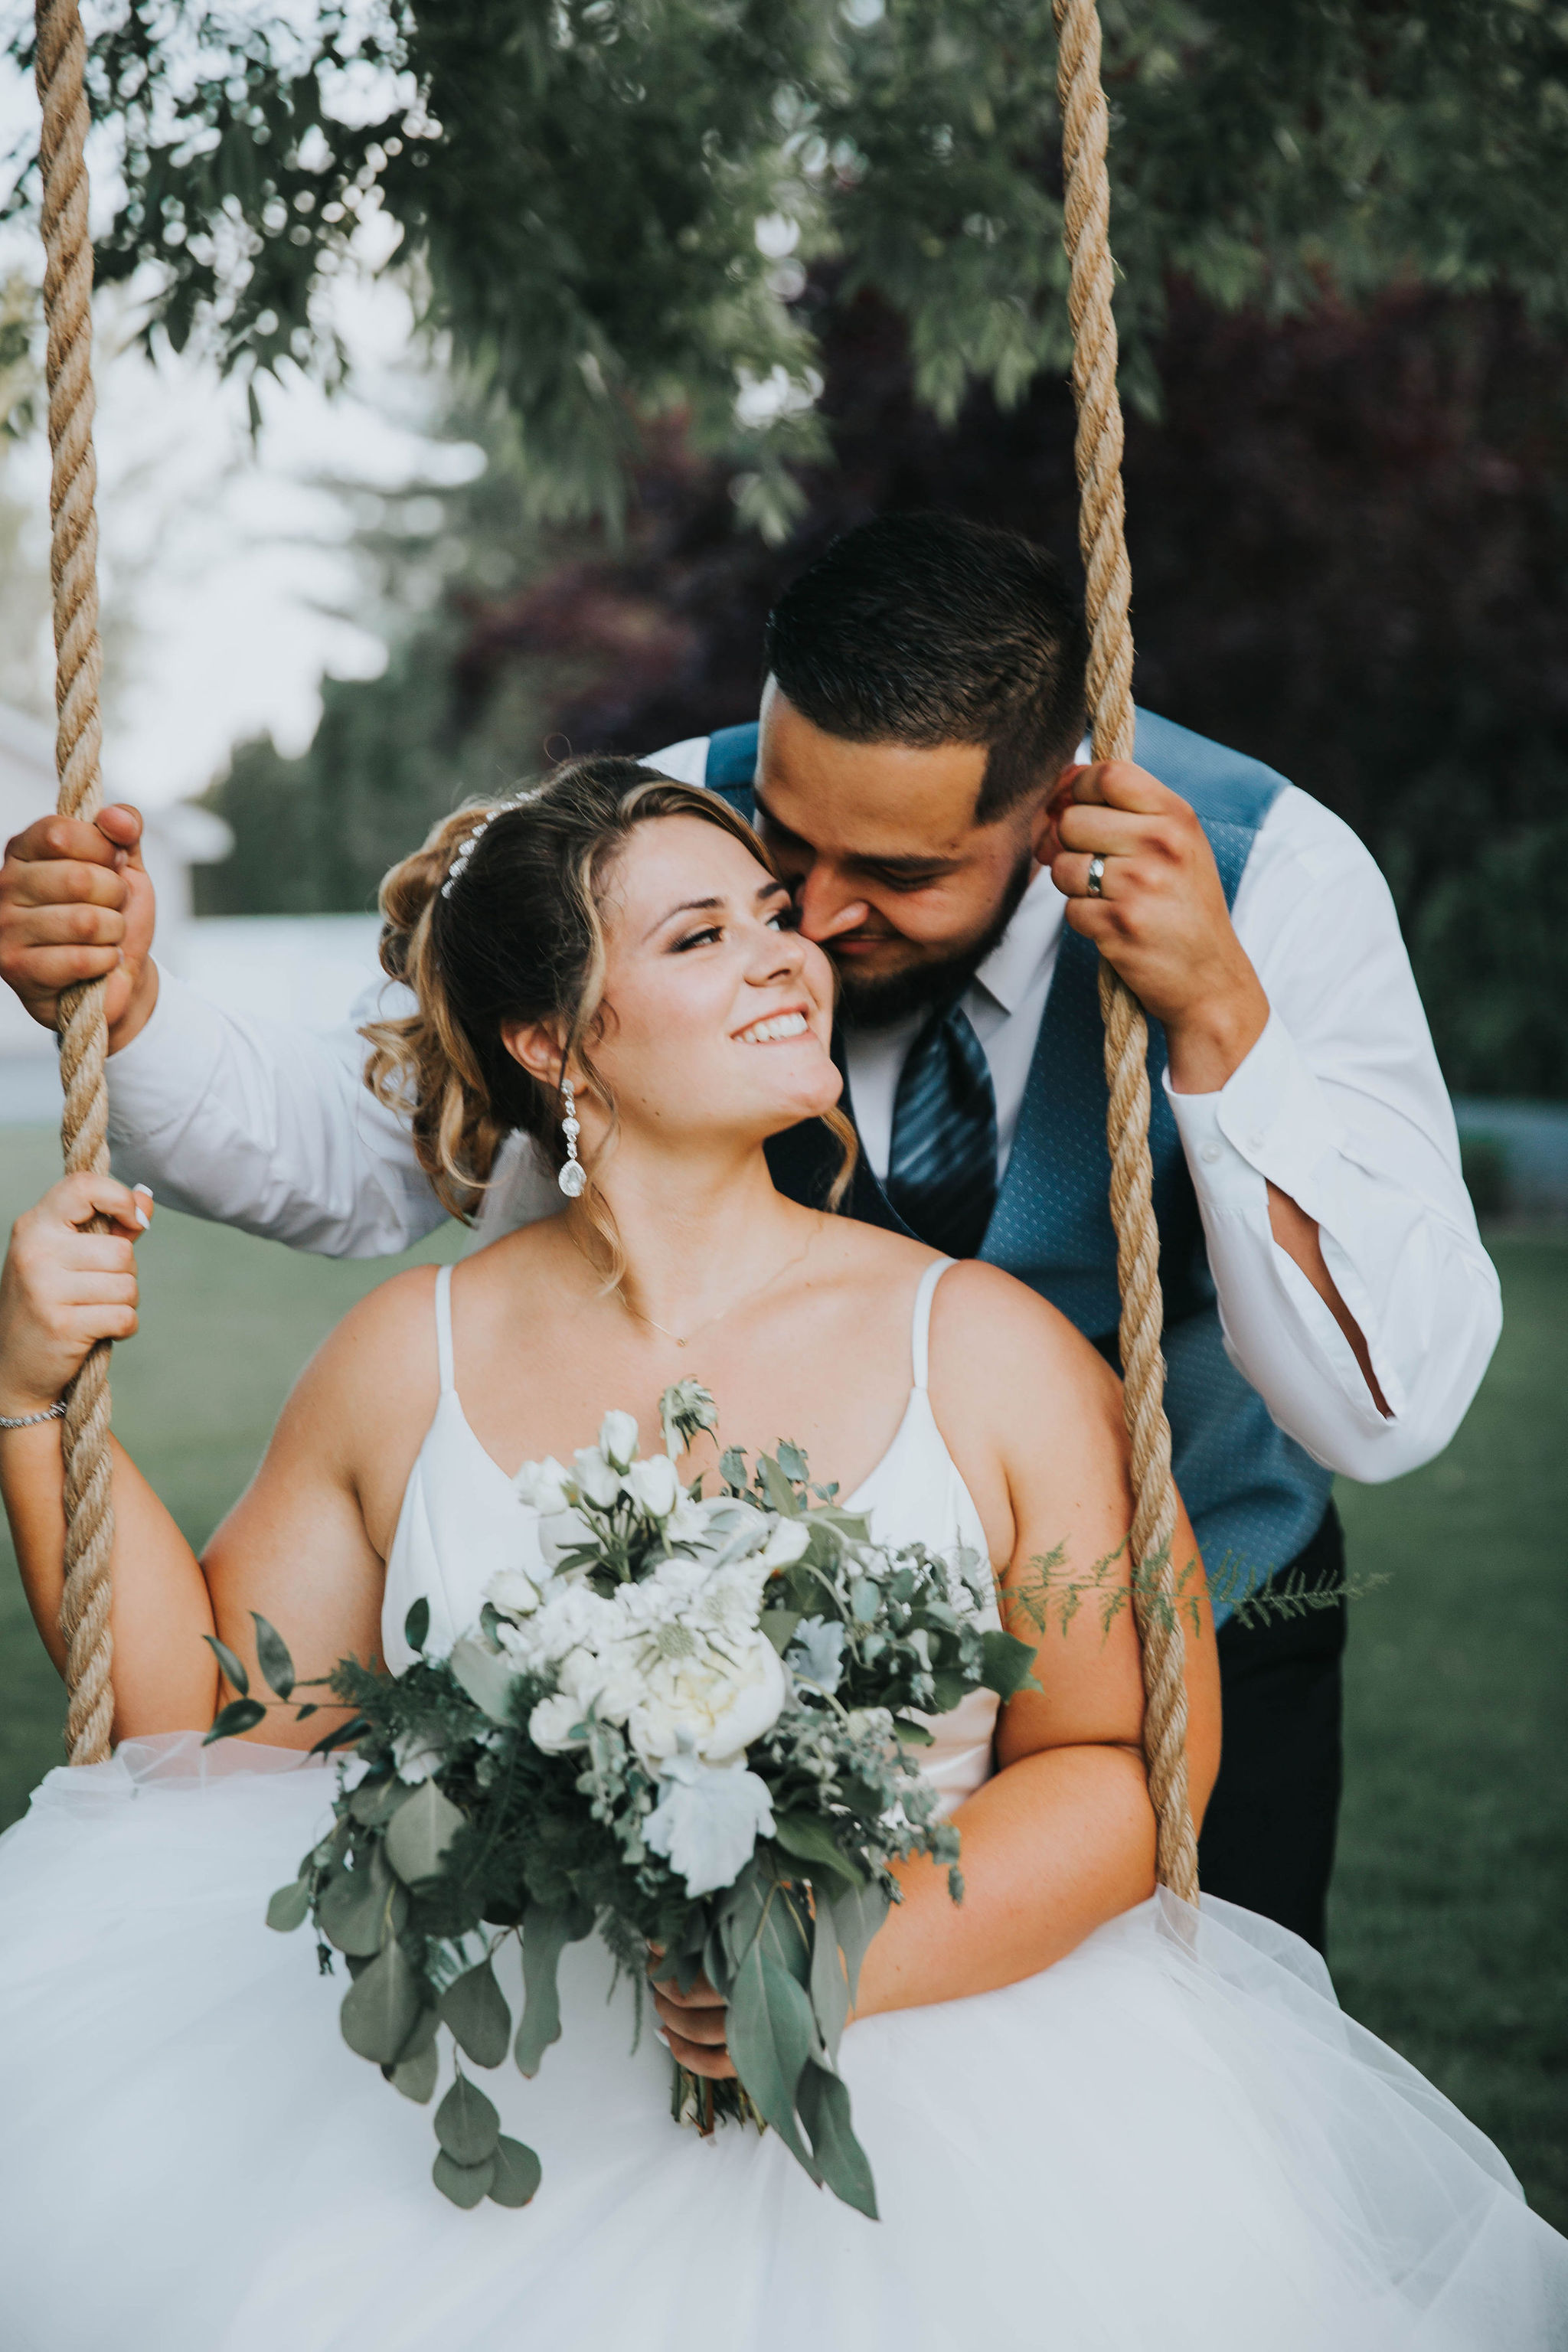 rope swing spokane bride and groom wedding